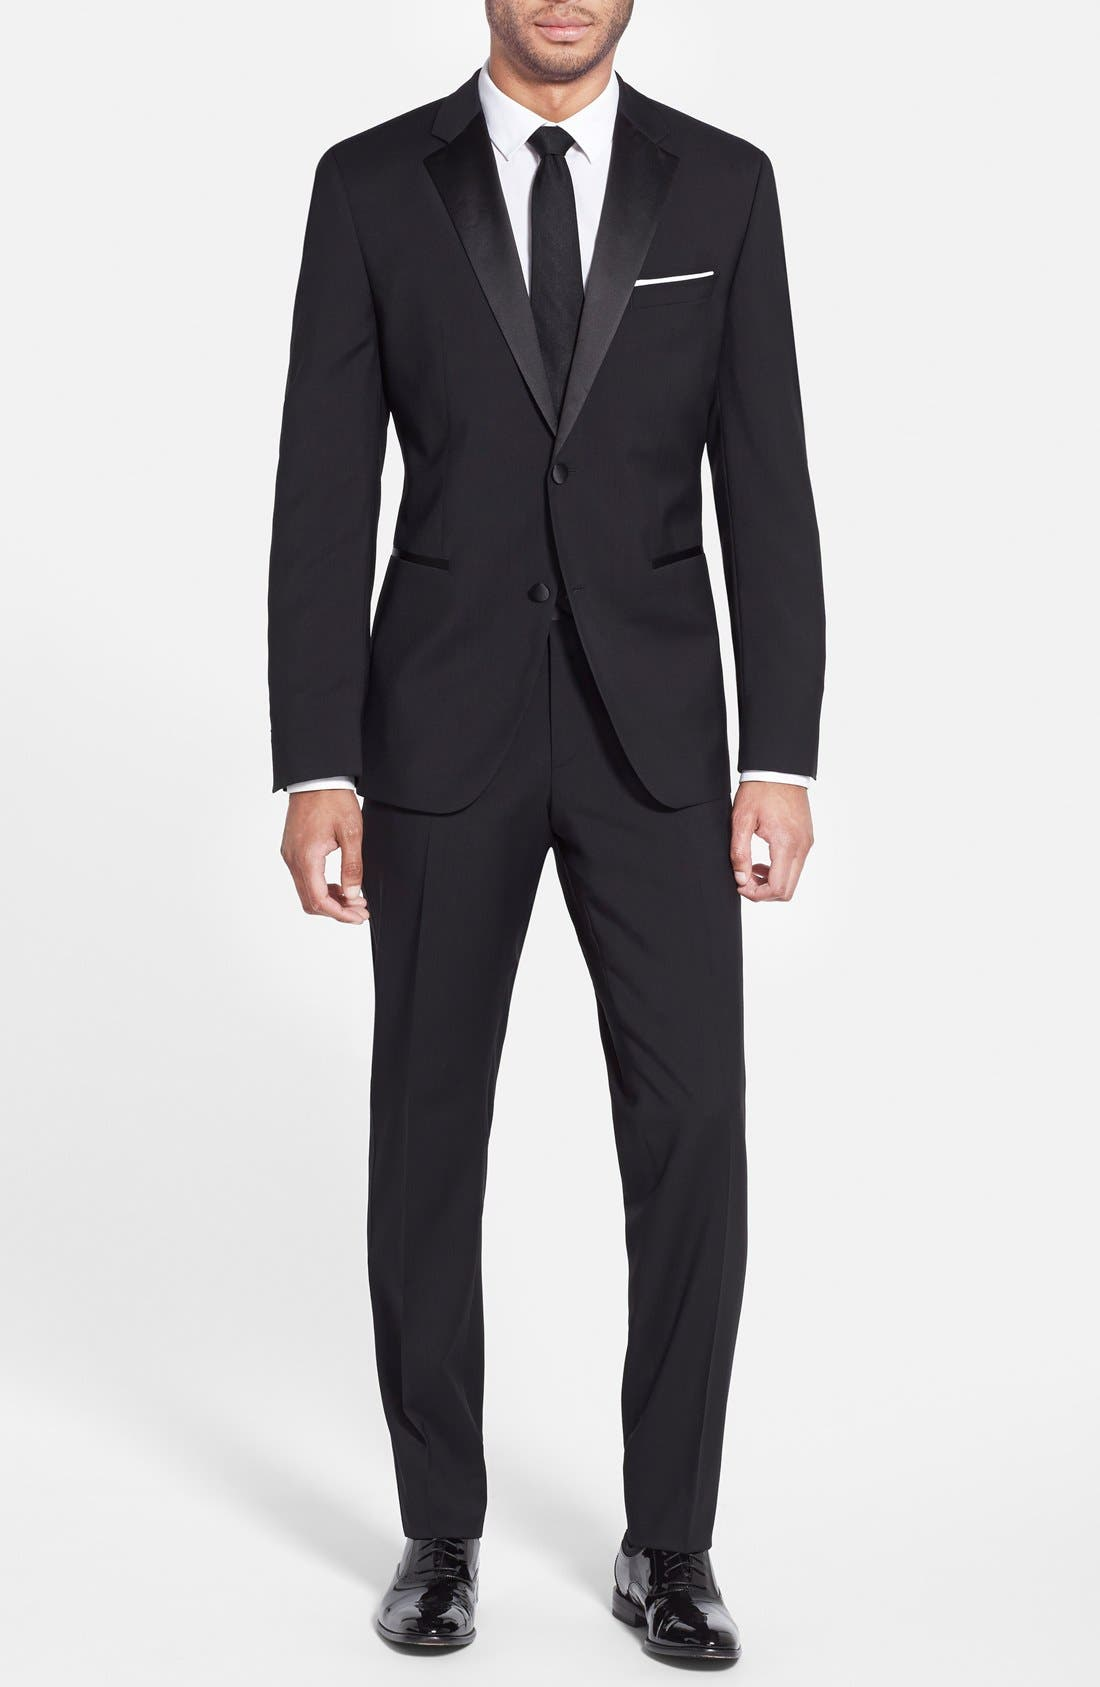 Alternate Image 1 Selected - BOSS The Stars/Glamour Trim Fit Wool Tuxedo